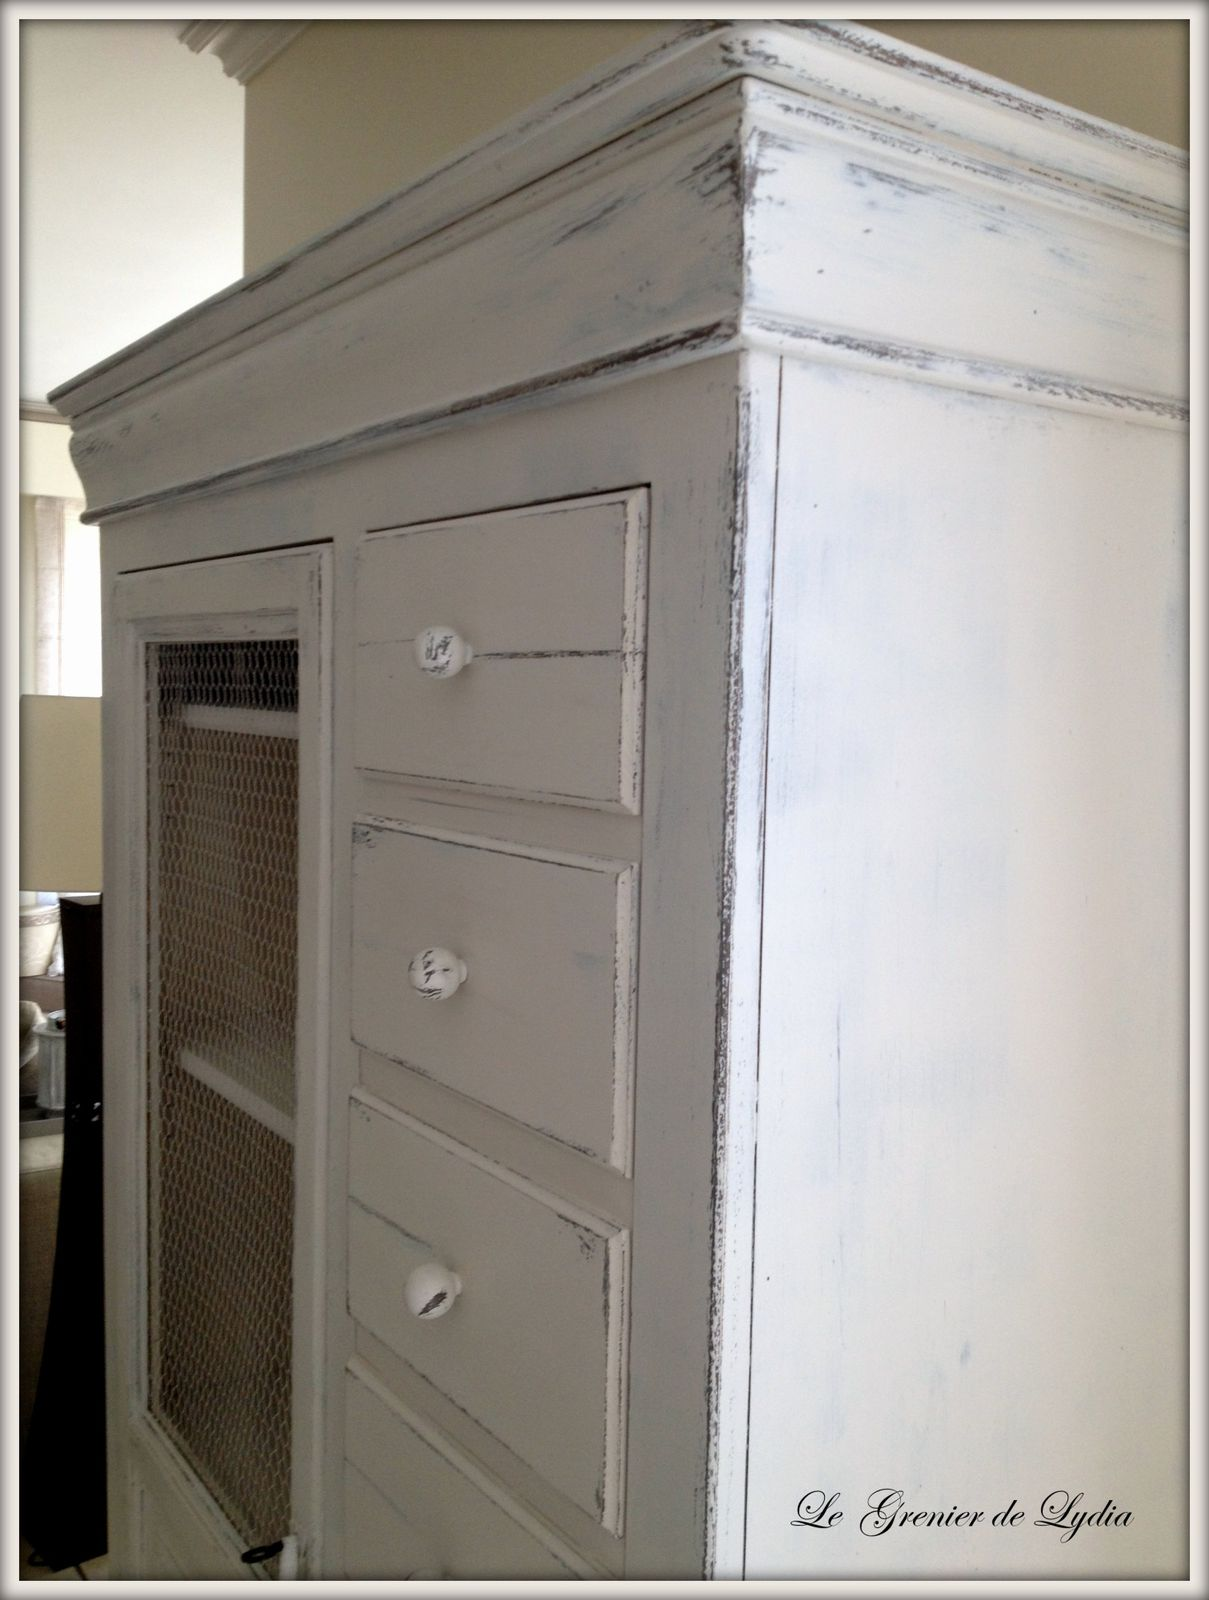 relooking d 39 une armoire proven ale et d 39 une bonneti re relooking de meubles meubles. Black Bedroom Furniture Sets. Home Design Ideas